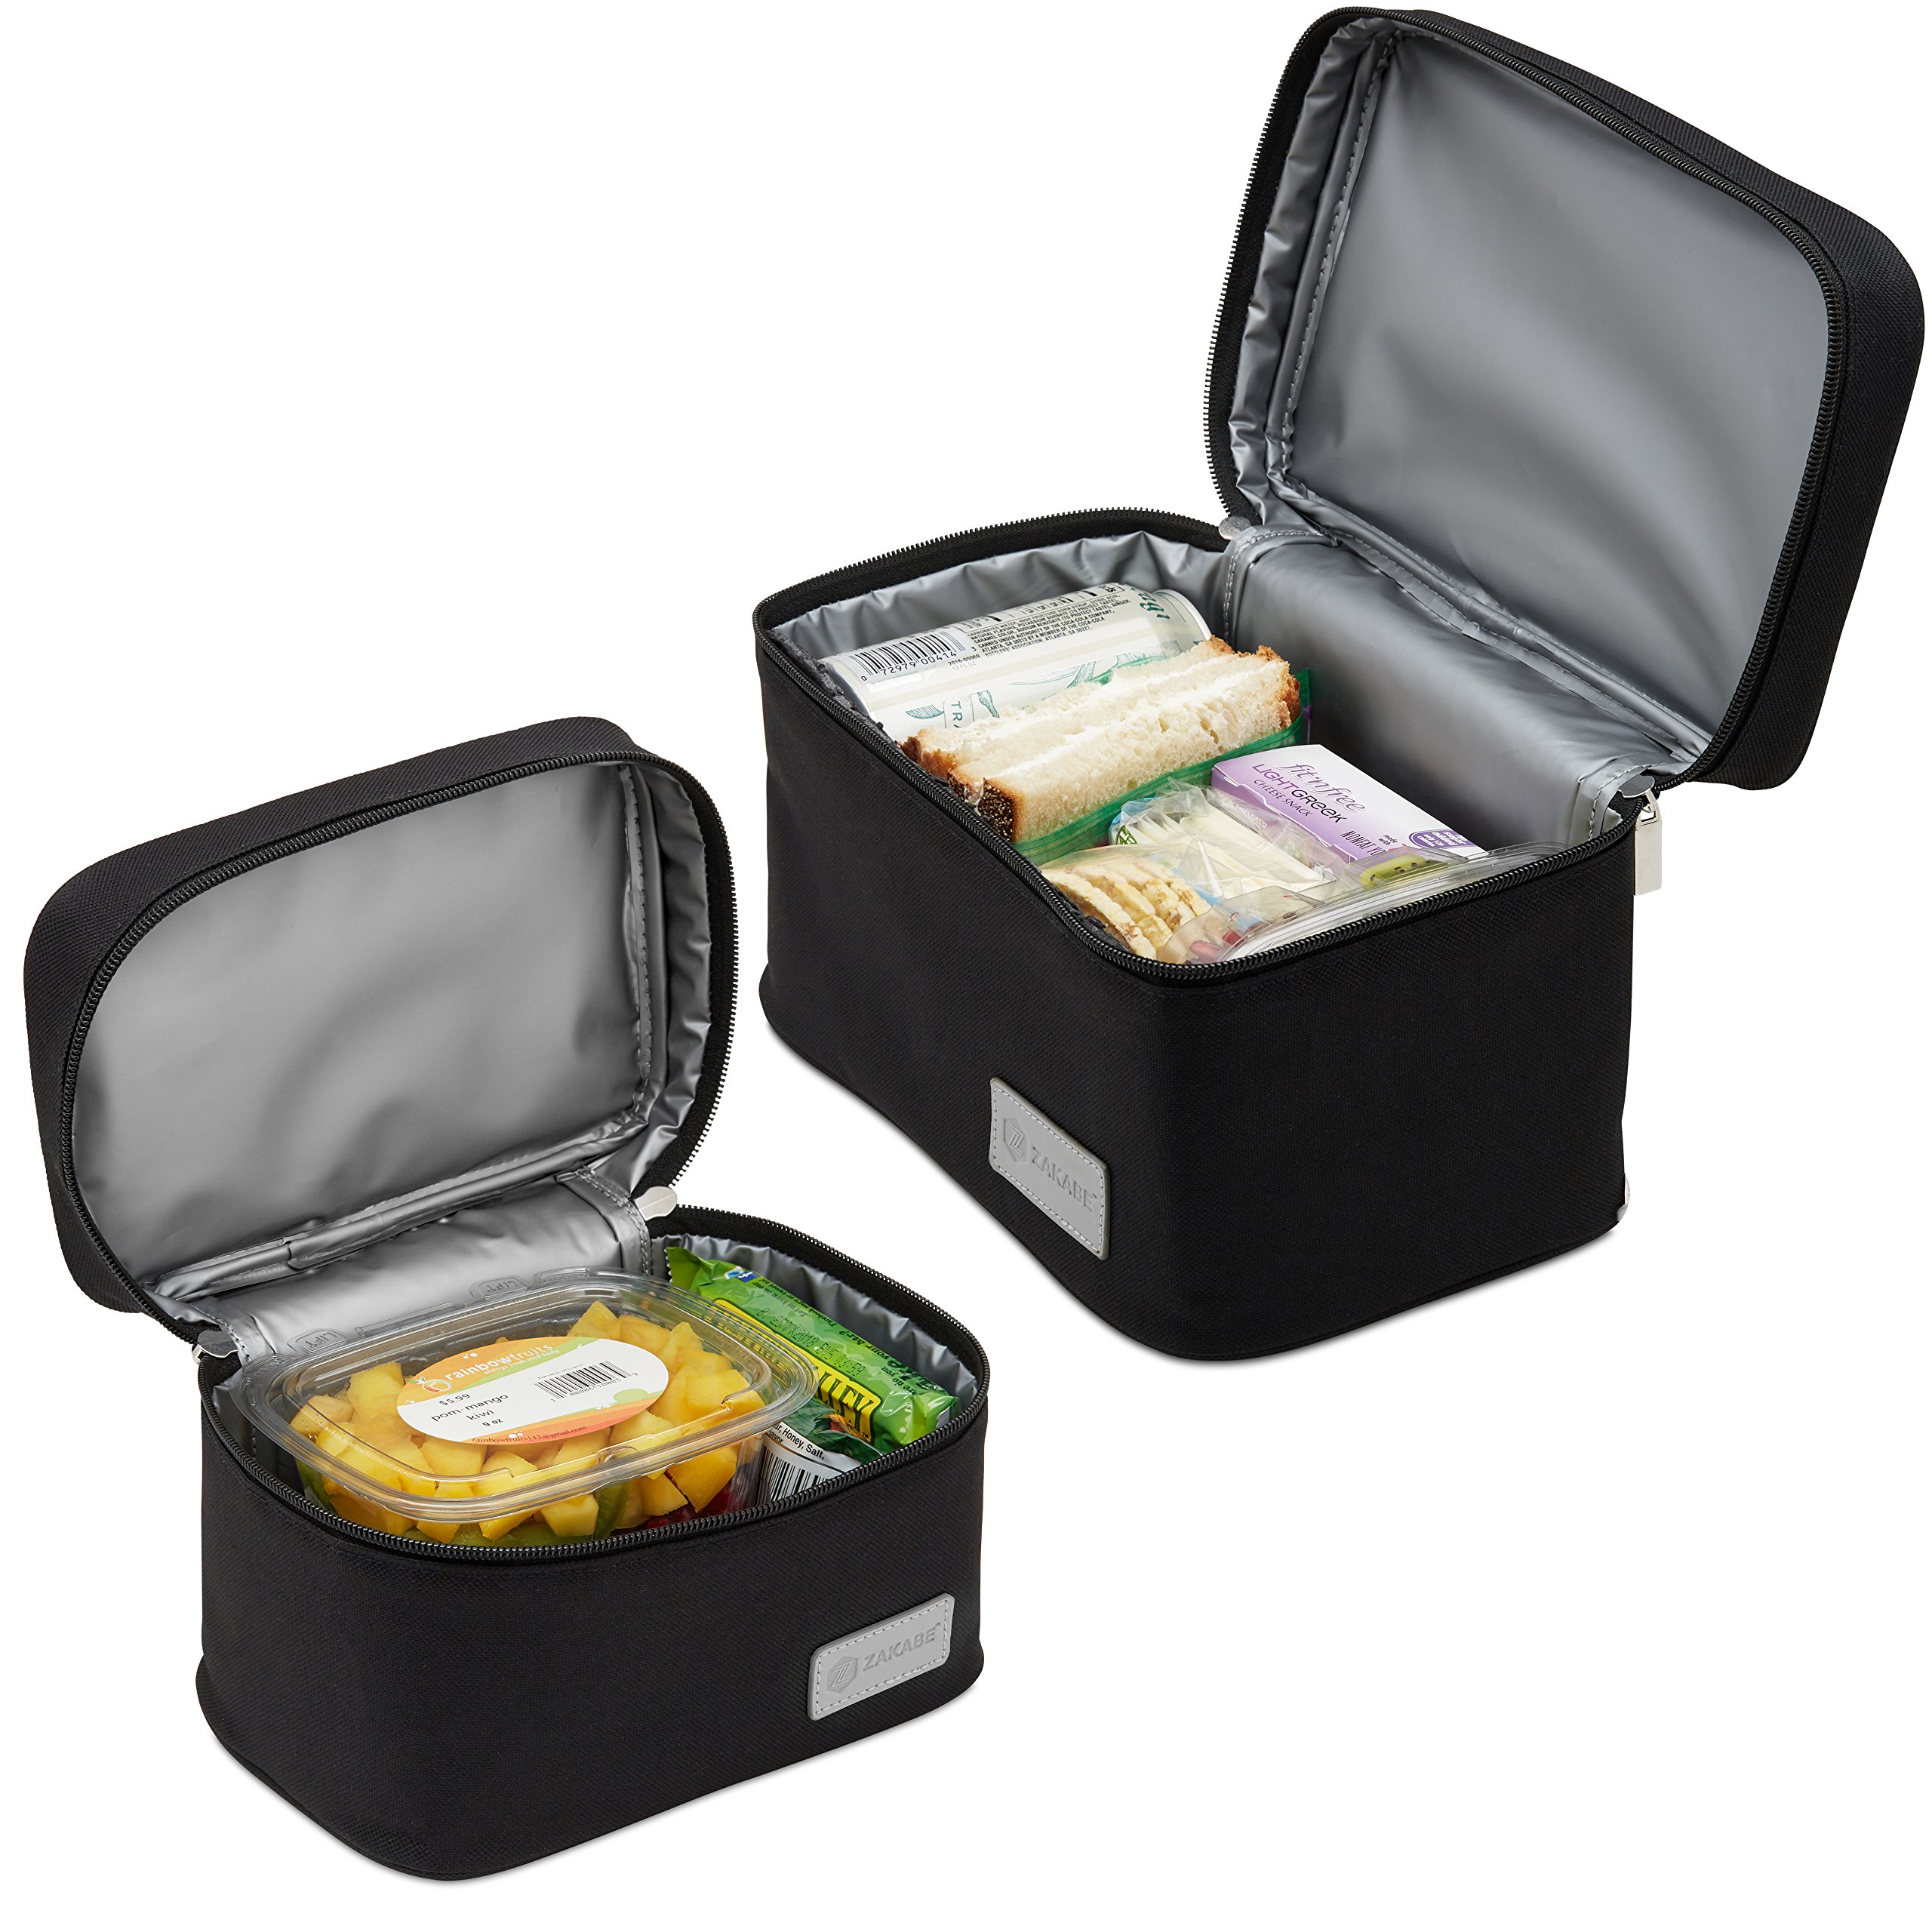 Zakabe Lunch Bag, Lunch Box, Cooler Bag, Set of 2 Sizes, Insulated, for Women, Kids, Adults, Men, Work or School - Black by Zakabe (Image #2)